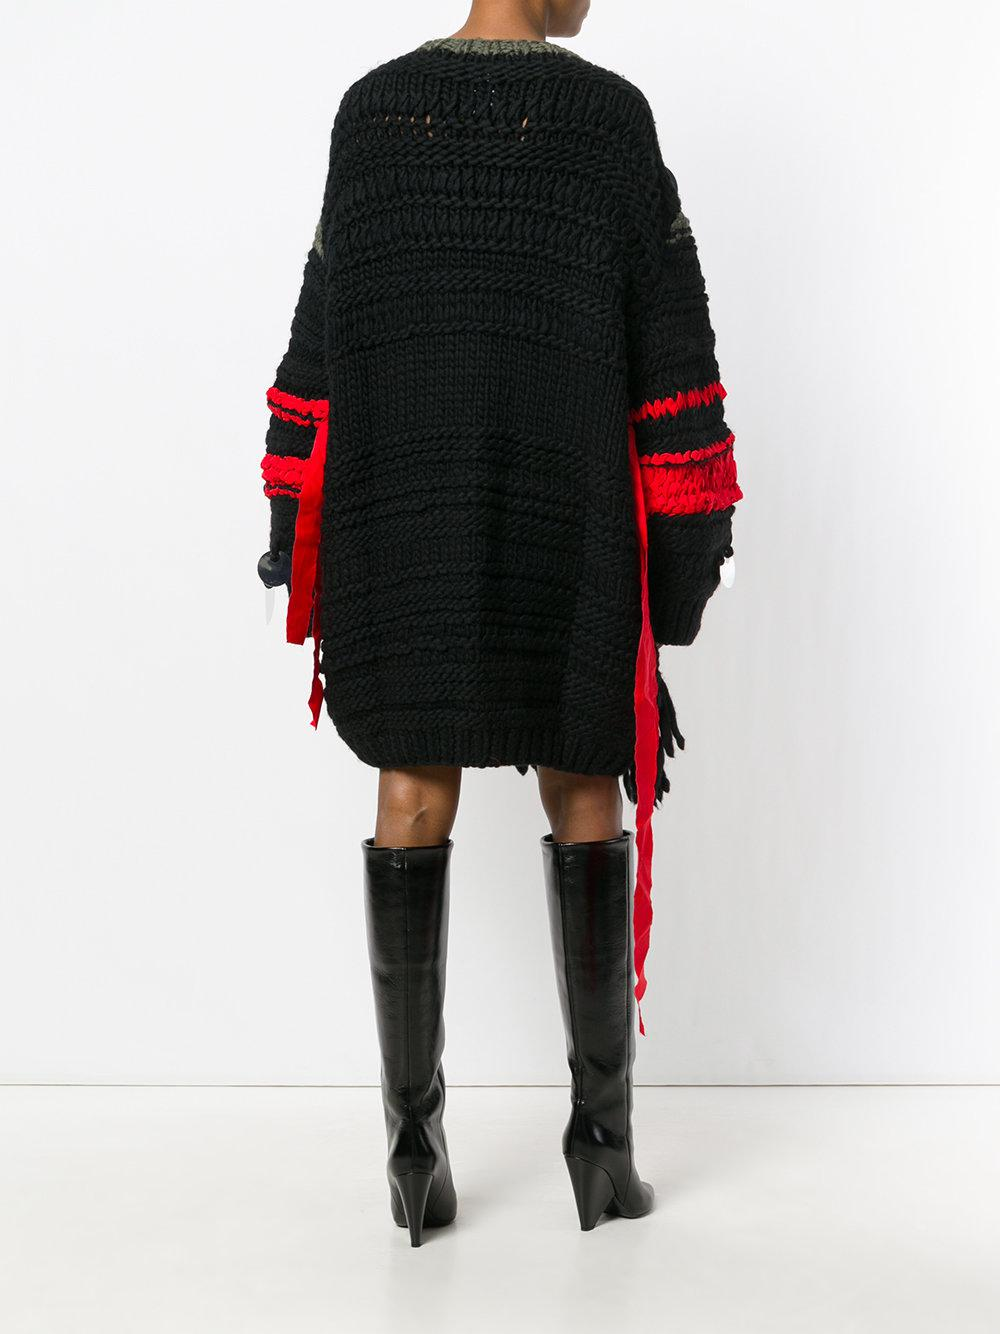 Ports 1961 Oversized Sequin Sweater Dress in Black | Lyst